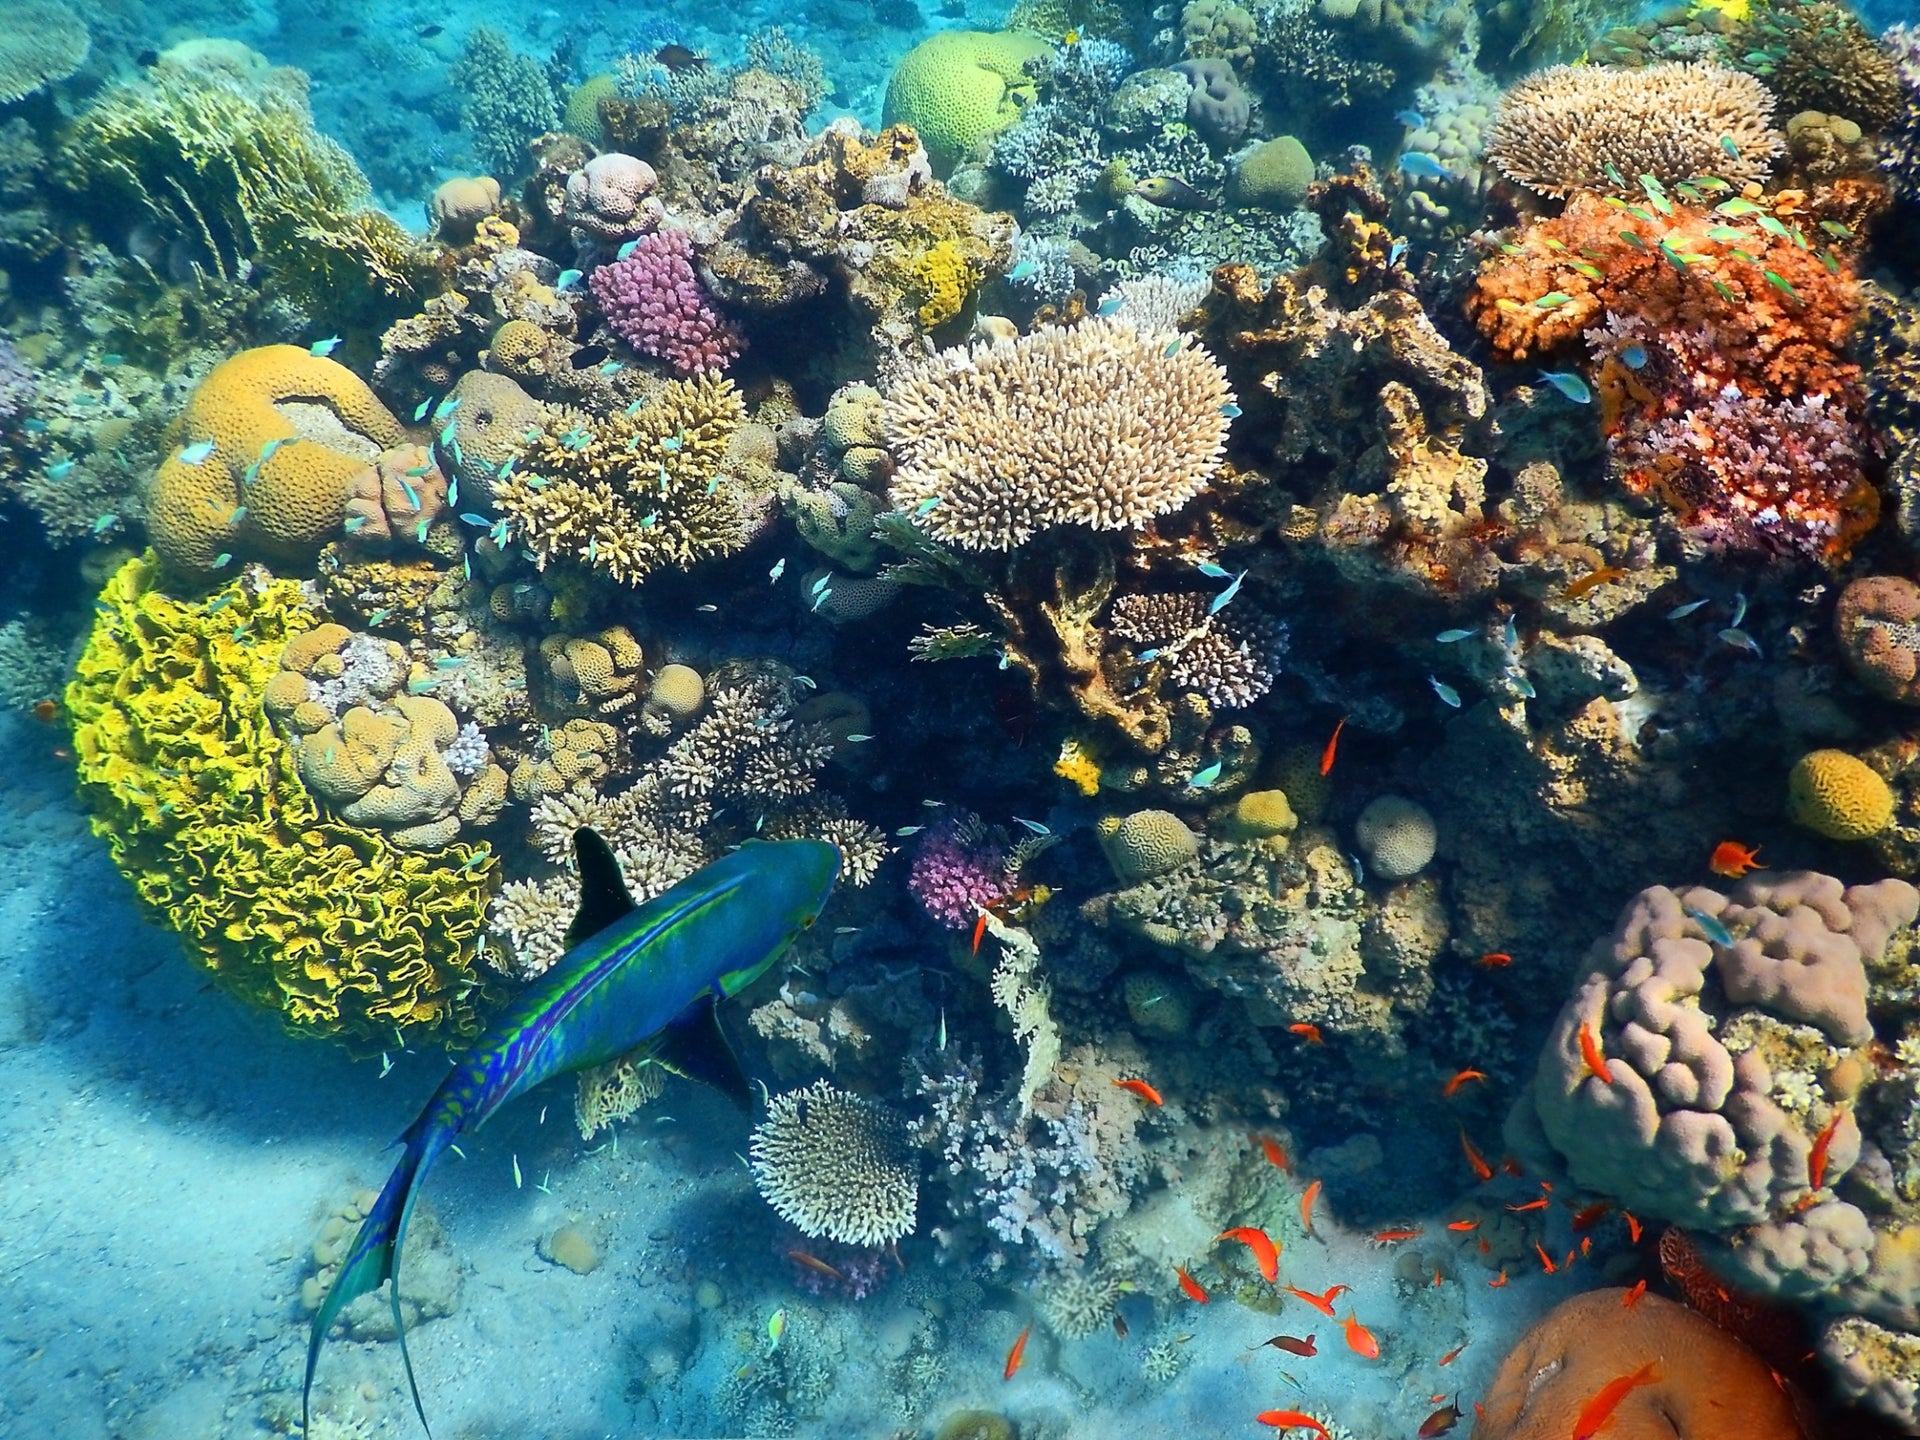 Multicolored corals and fish in Eilat's coral reef.